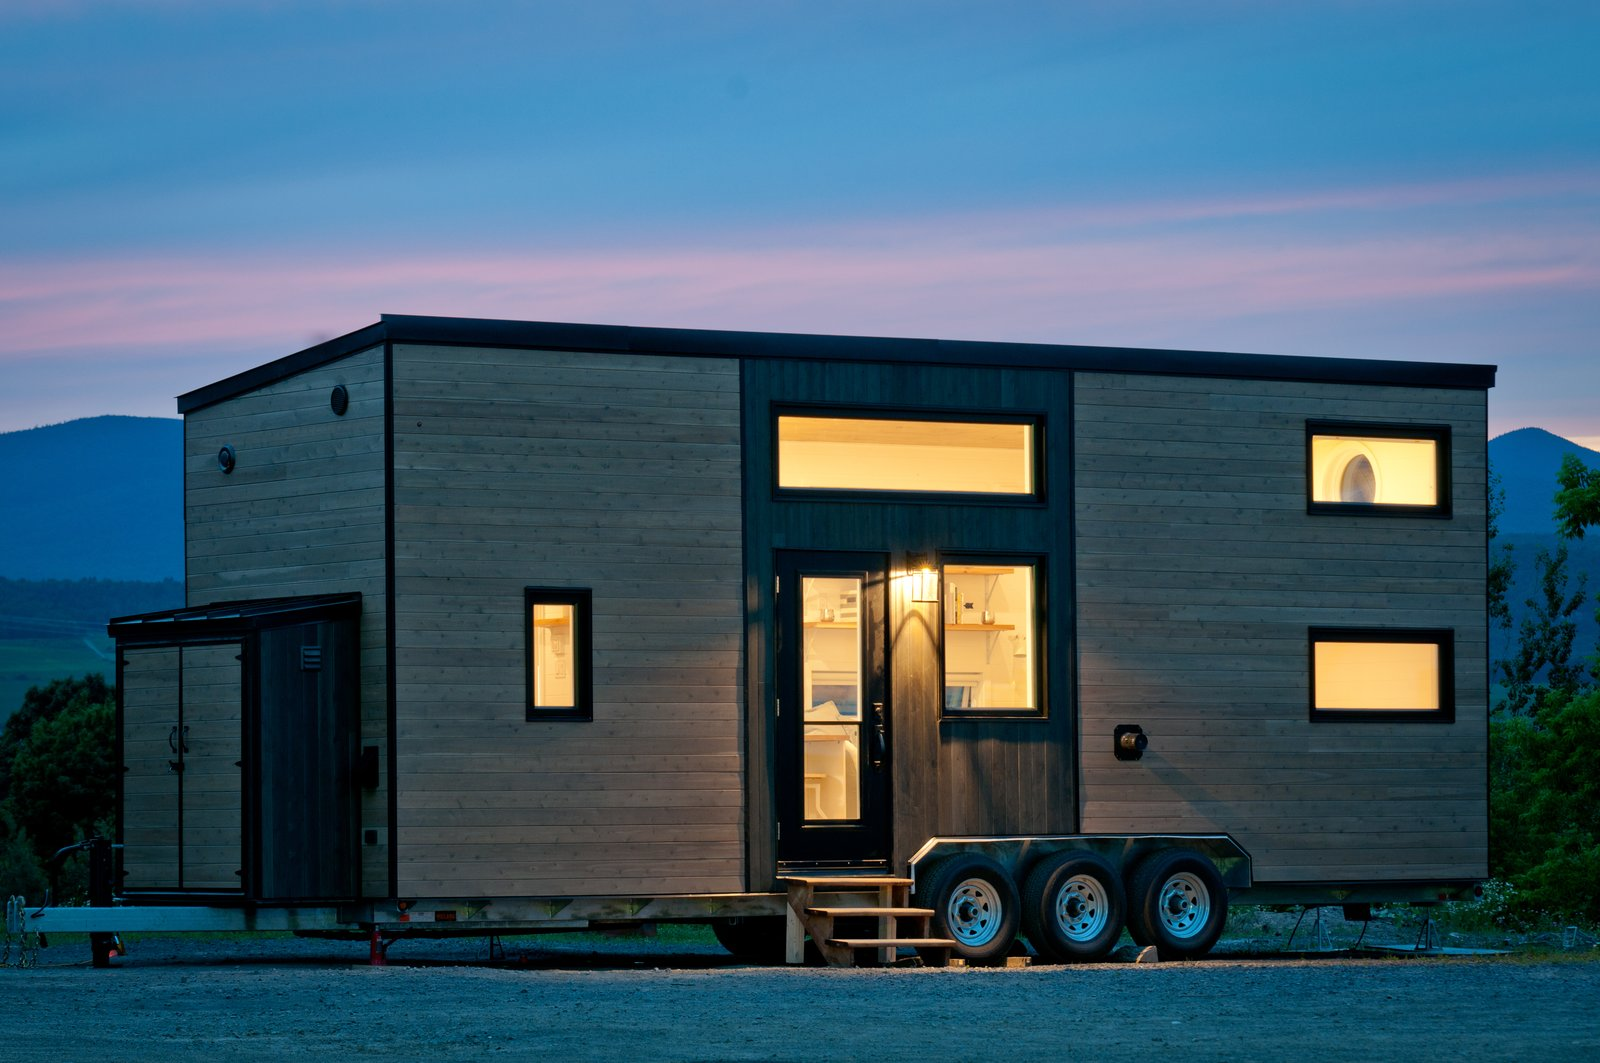 Exterior, Wood Siding Material, and Tiny Home Building Type Designed for year-round living for a mother and her teenage daughter, this 285-square-foot home has two closed bedrooms, a loft, and a living room with a sofa bed.  Photo 2 of 10 in Dwell's Top 10 Tiny Homes of 2018 from This Canadian Trio Builds Contemporary Tiny Homes Starting Under $69K